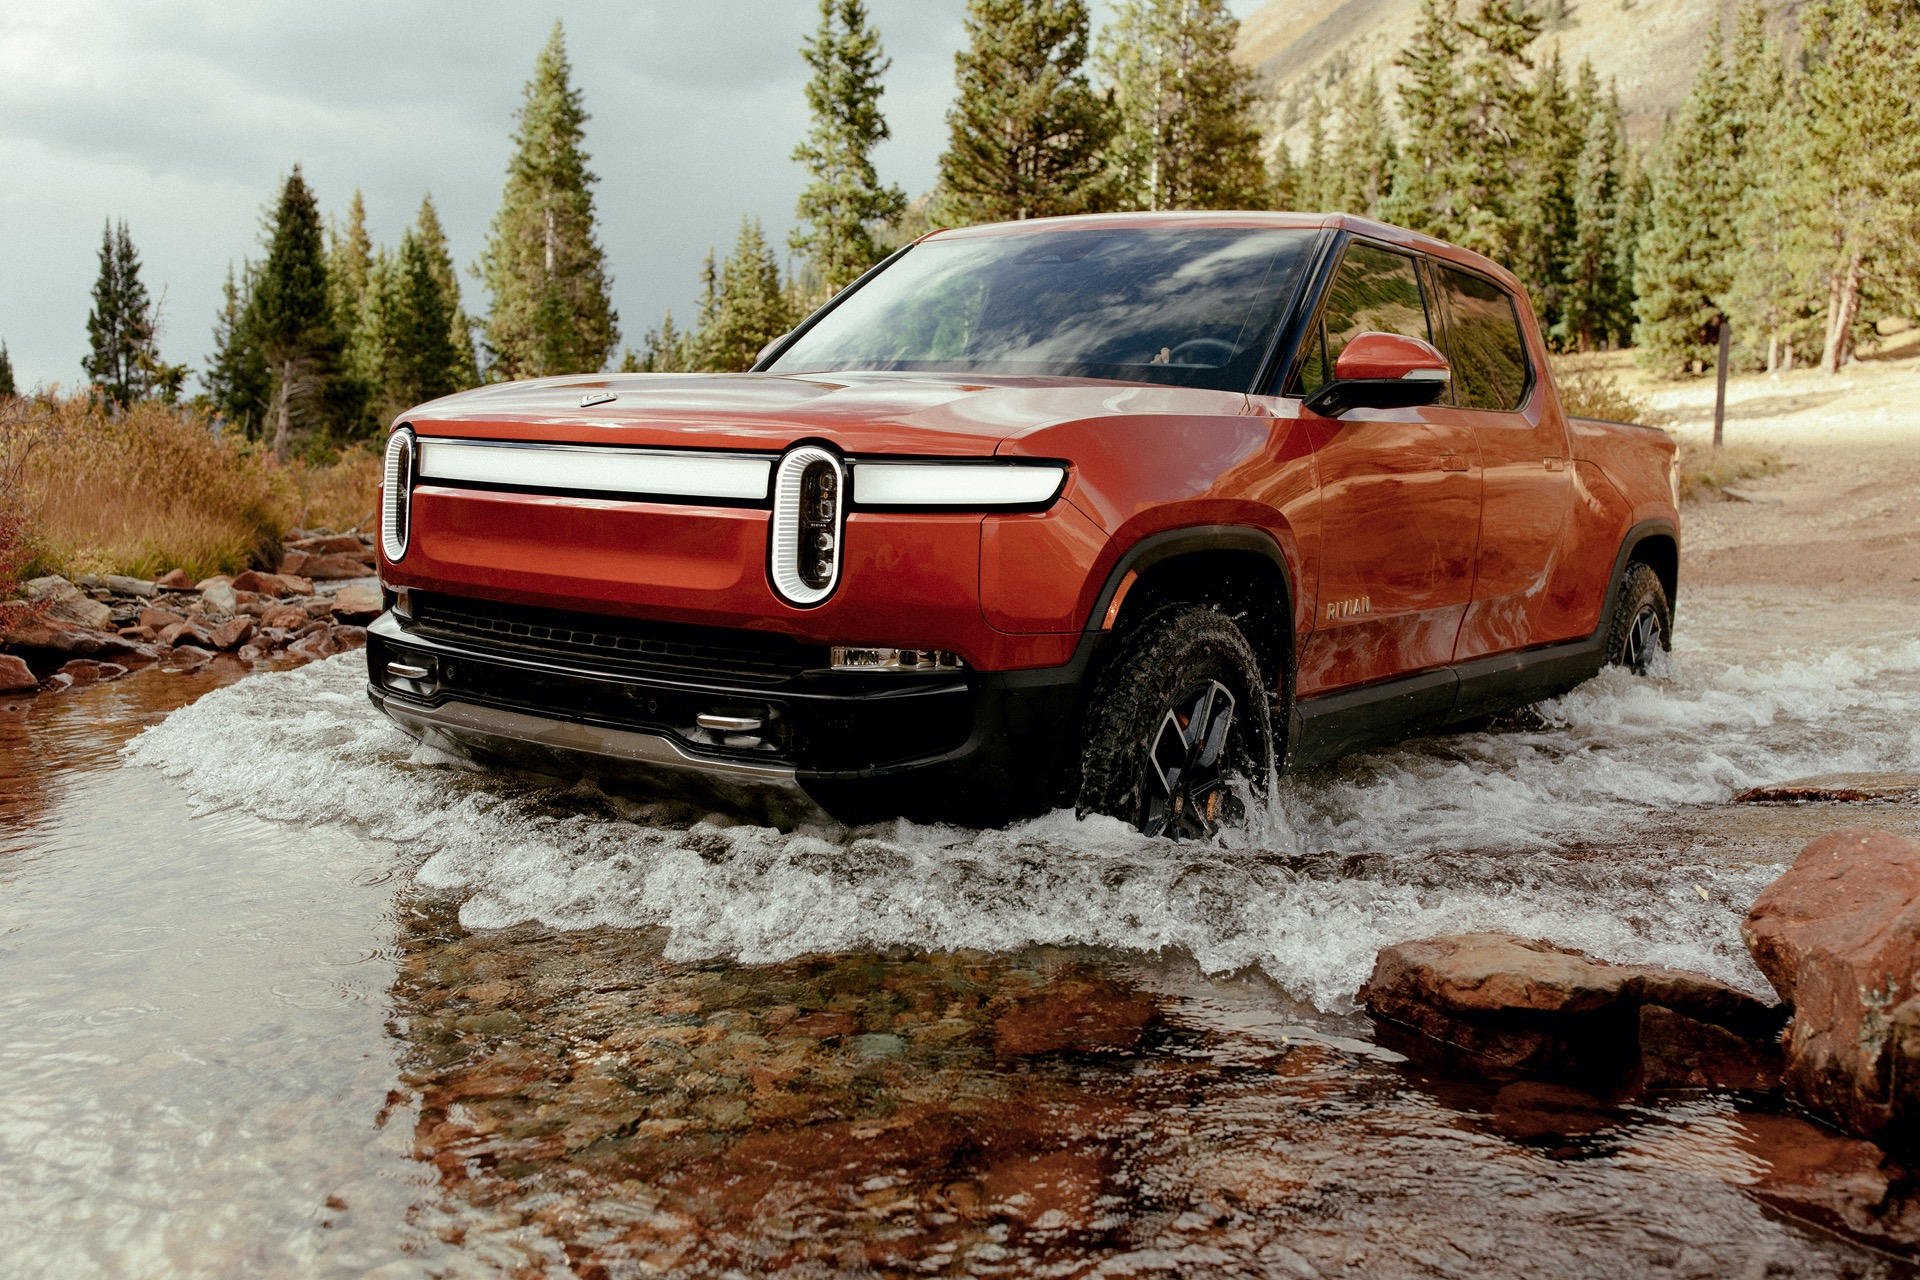 First drive review: 2022 Rivian R1T electric pickup truck climbs to new heights of capability